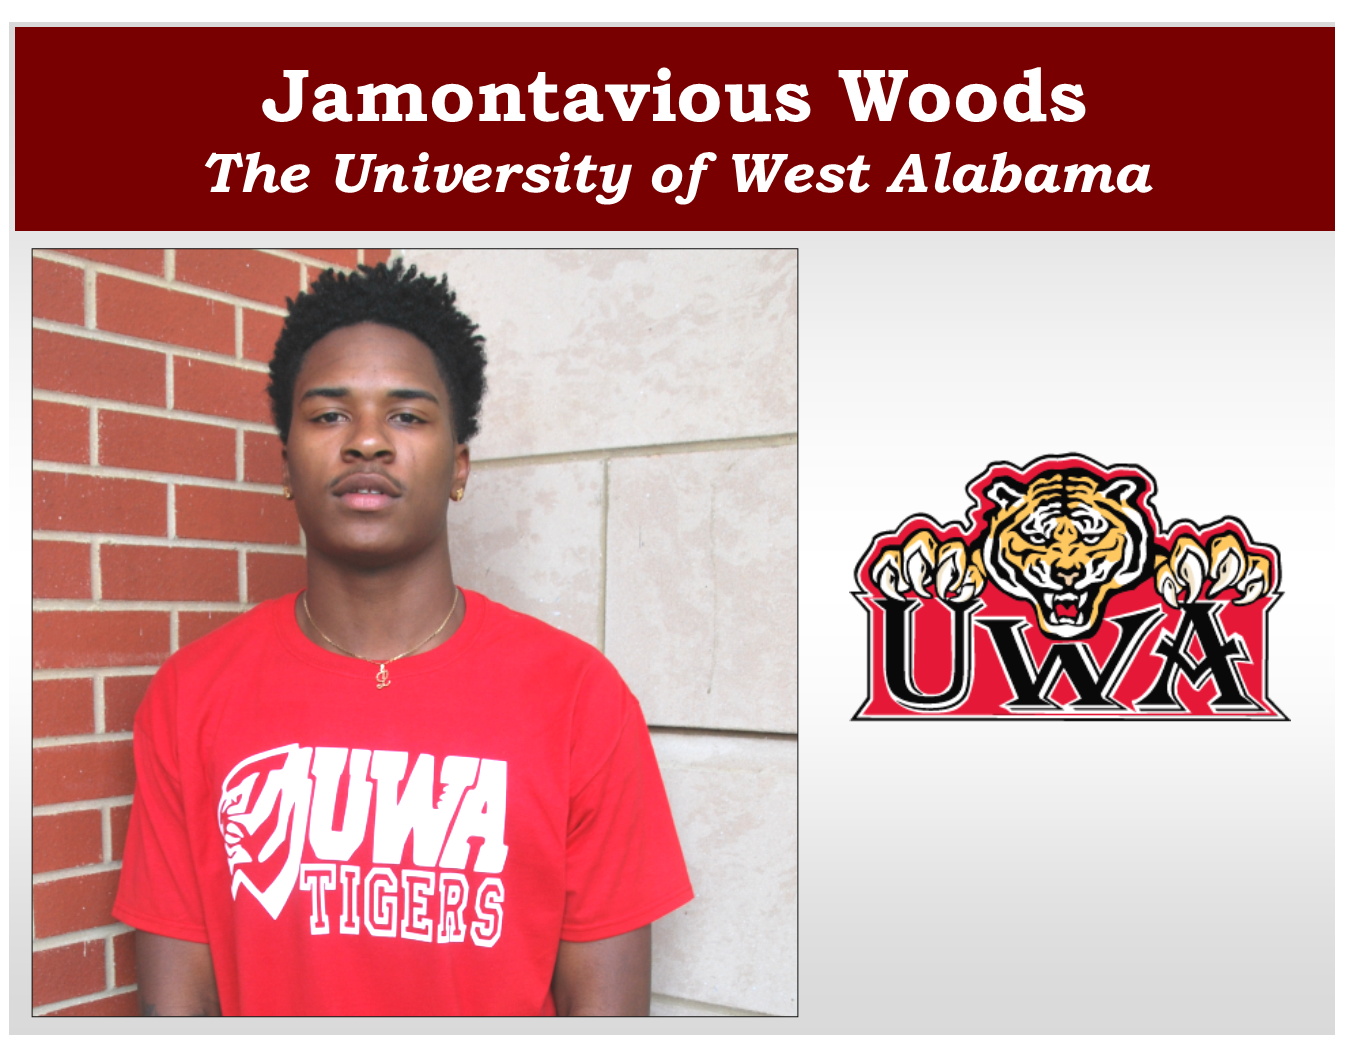 Jamontavious Woods